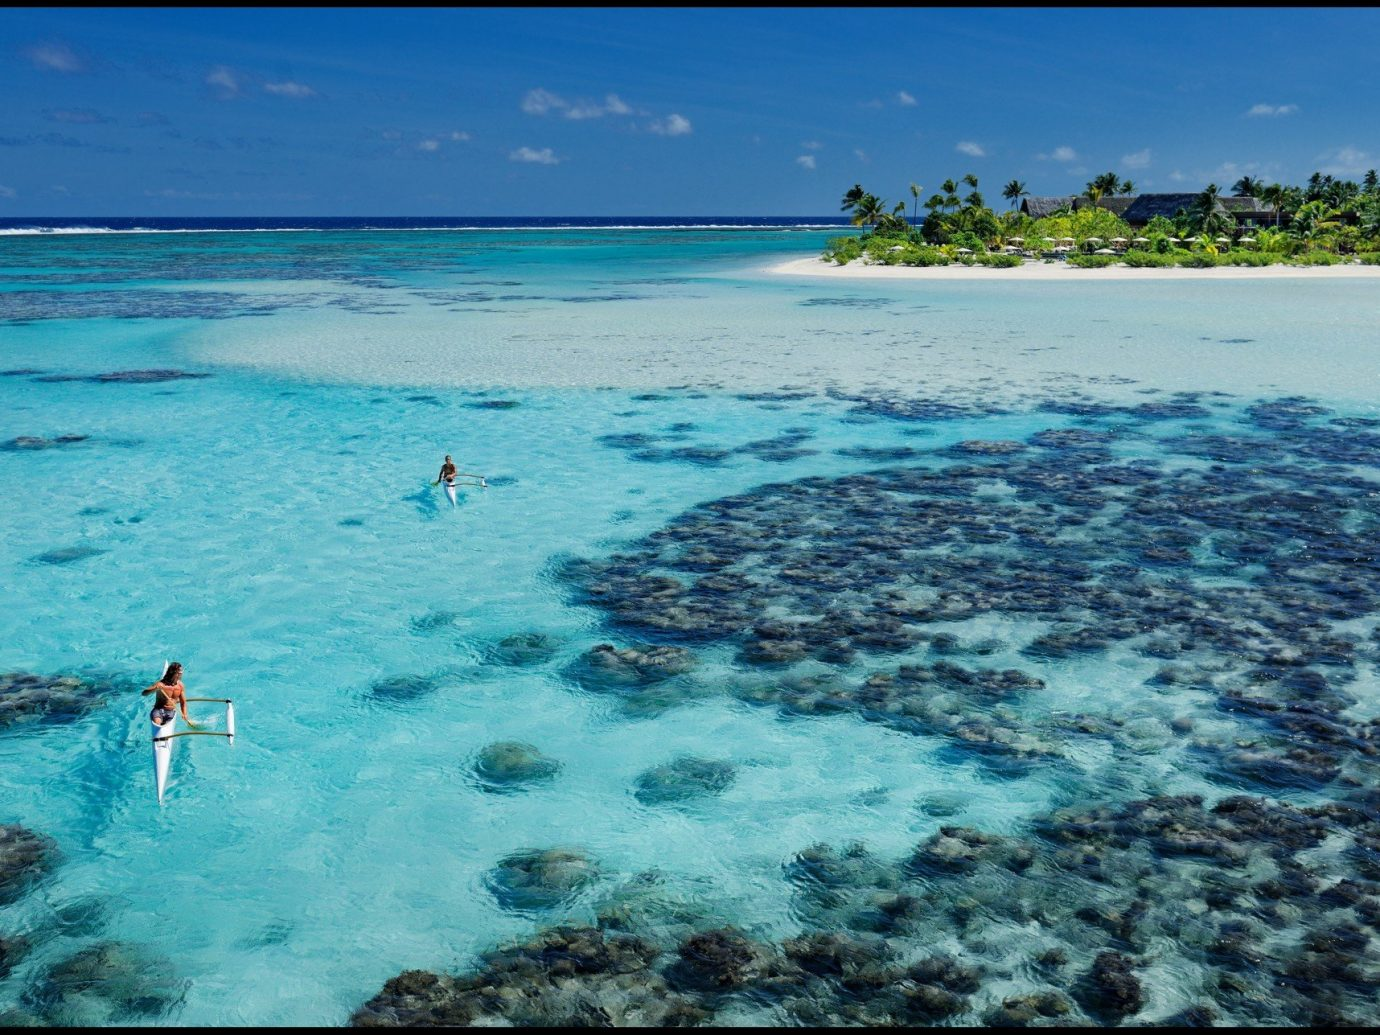 Beach calm clear water Hotels isolation kayaking kayaks Luxury Travel Ocean people remote serene Tropical turquoise Water activities white sands water sky outdoor habitat marine biology Sea caribbean reef biology Lagoon coral reef wind wave Island bay Coast underwater islet blue cay wave atoll cape swimming shore day